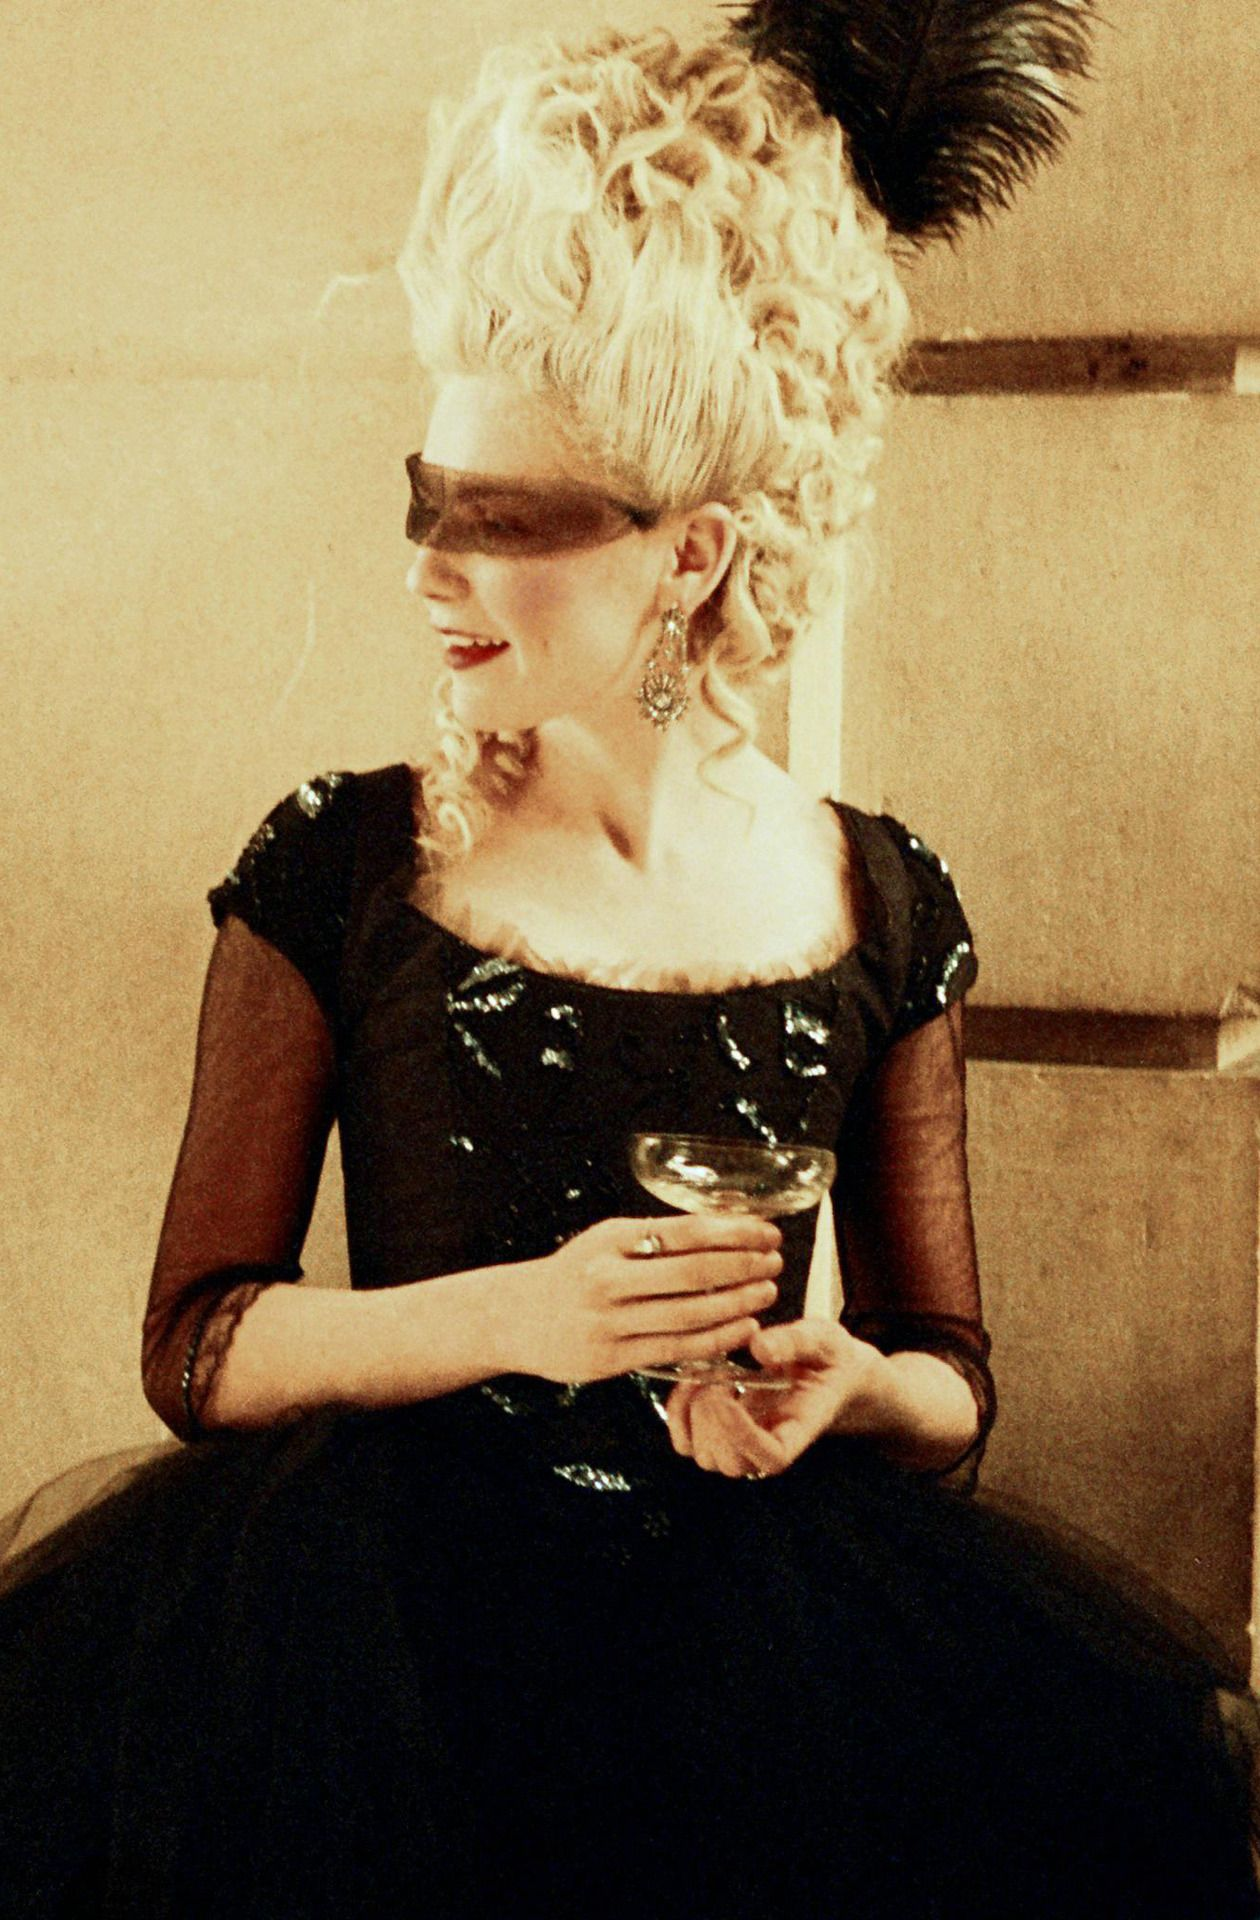 'Marie Antoinette' 2006 - Loved her in this black gown ...